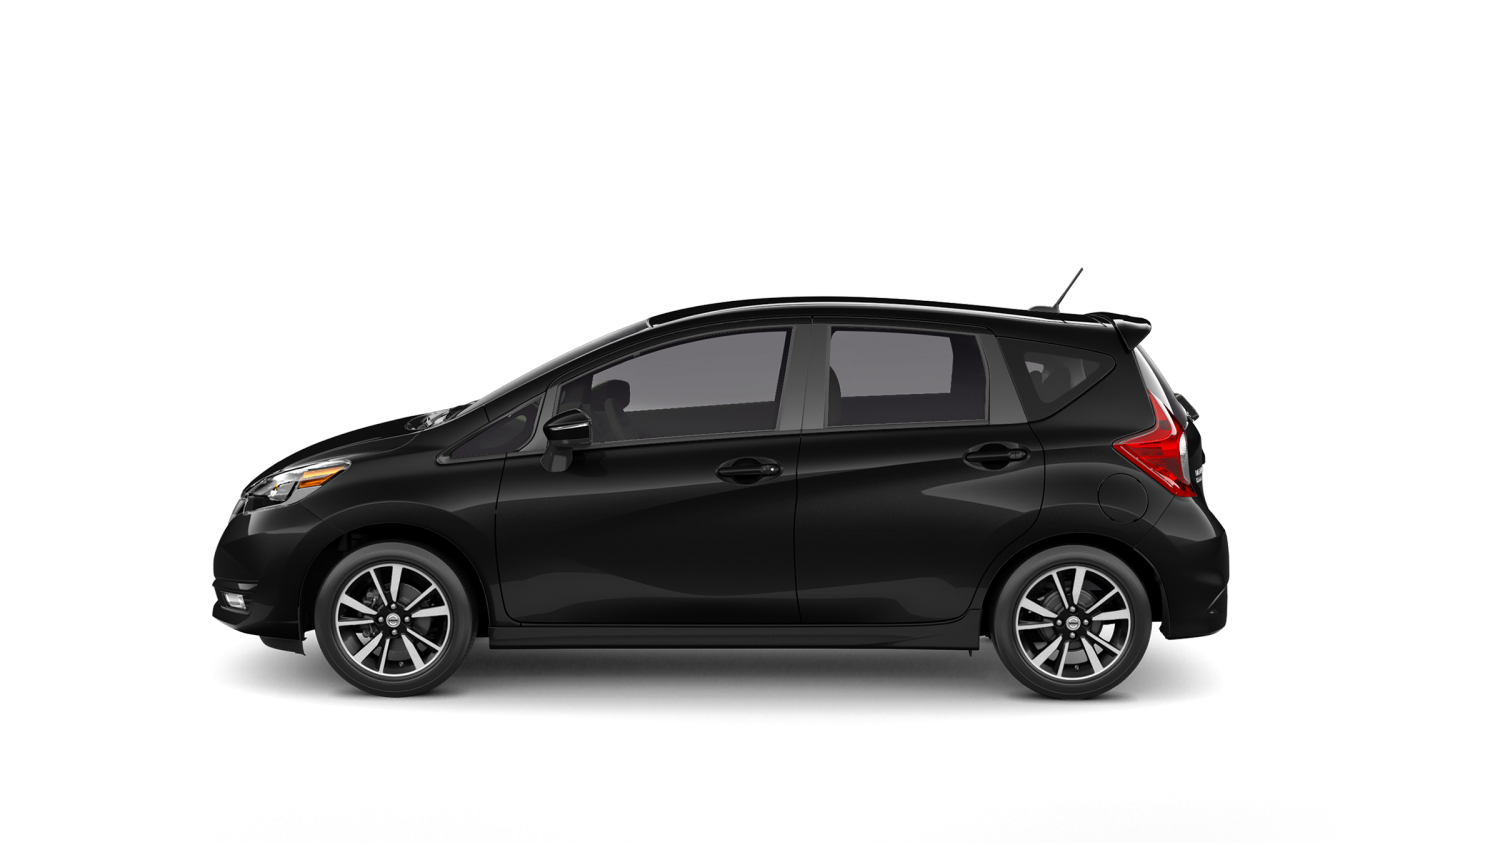 99 Great 2019 Nissan Versa Note Wallpaper for 2019 Nissan Versa Note